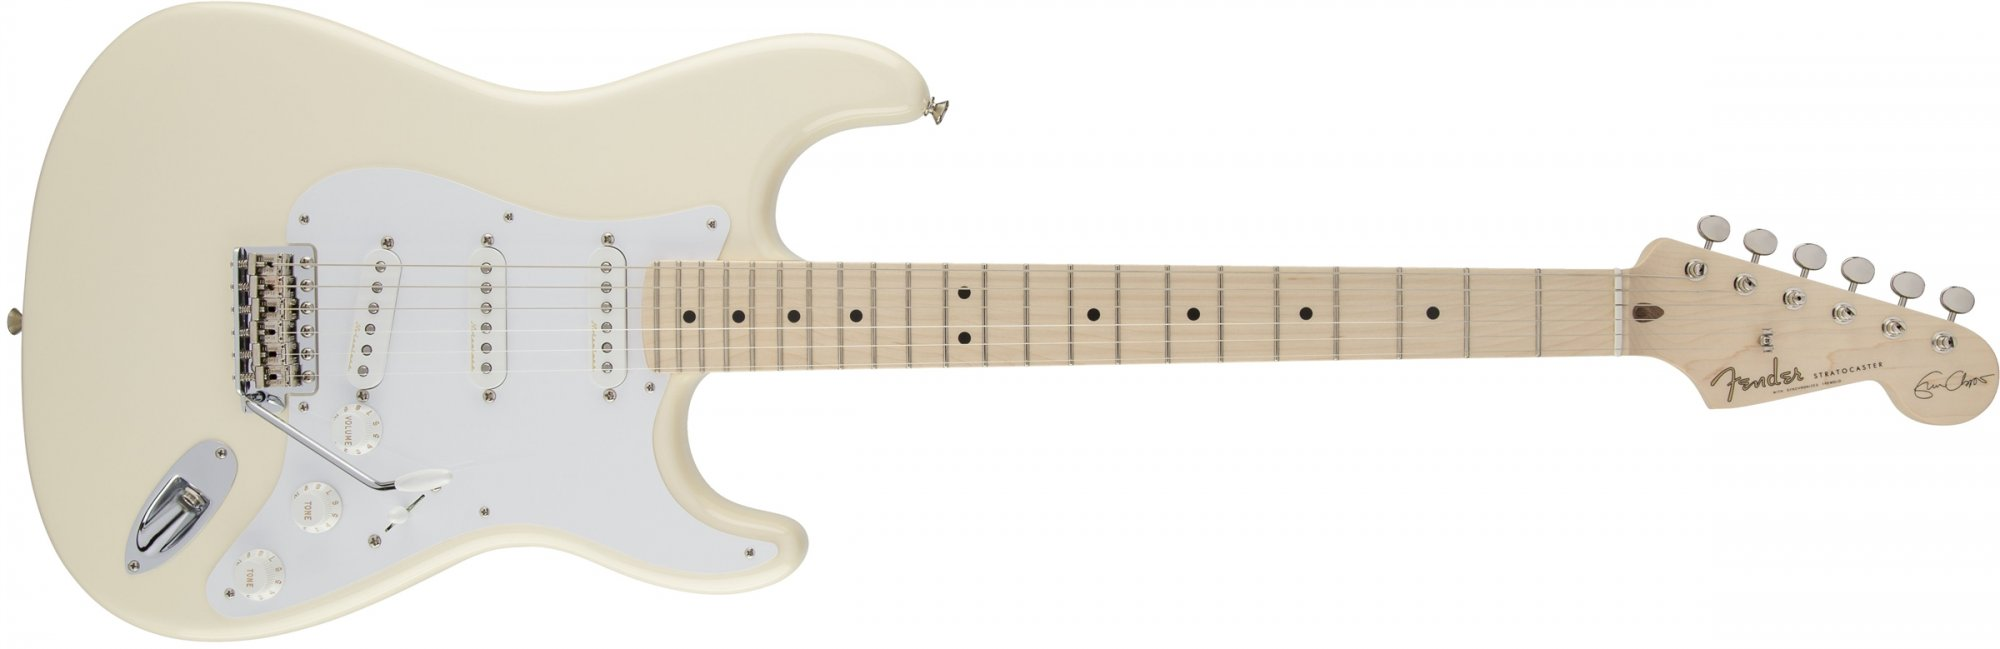 Fender Eric Clapton Stratocaster Electric Guitar